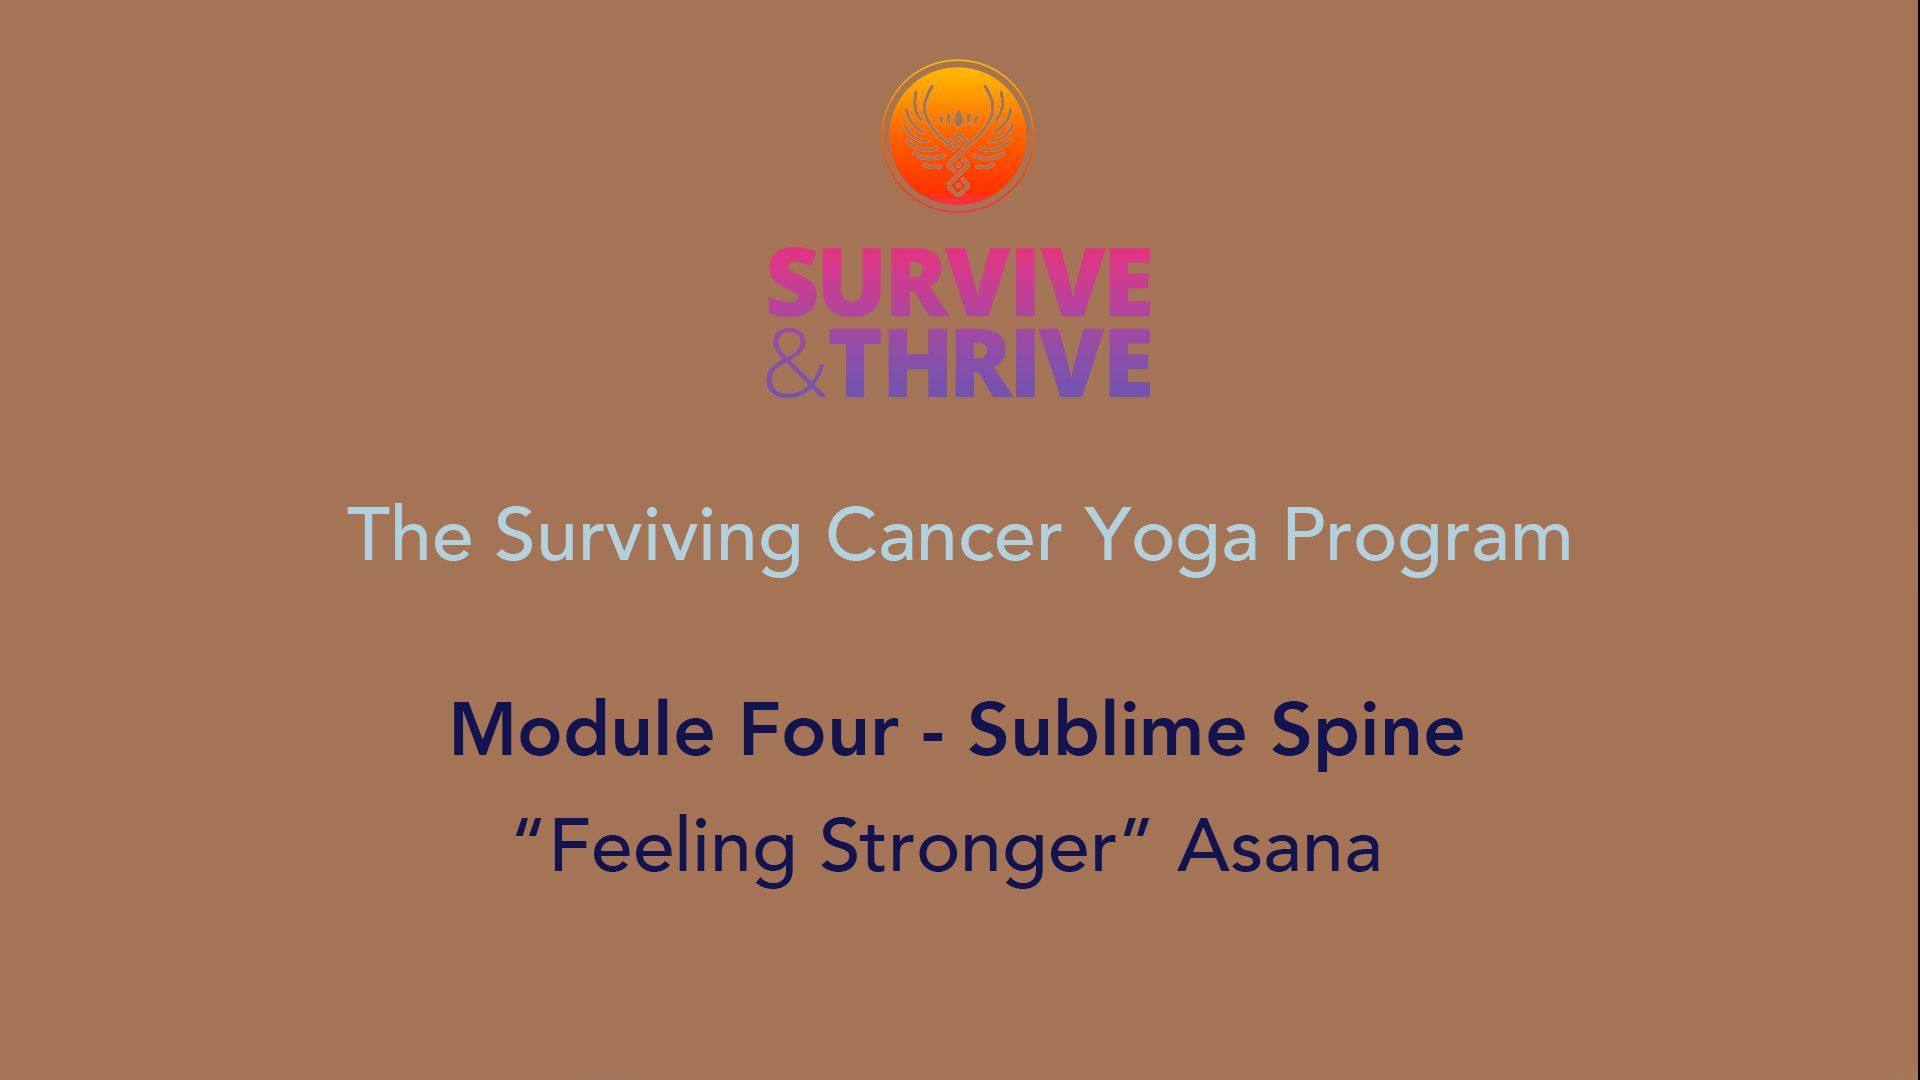 SURVIVE AND THRIVE | MODULE 4 - SUBLIME SPINE | FEELING STRONGER ASANA